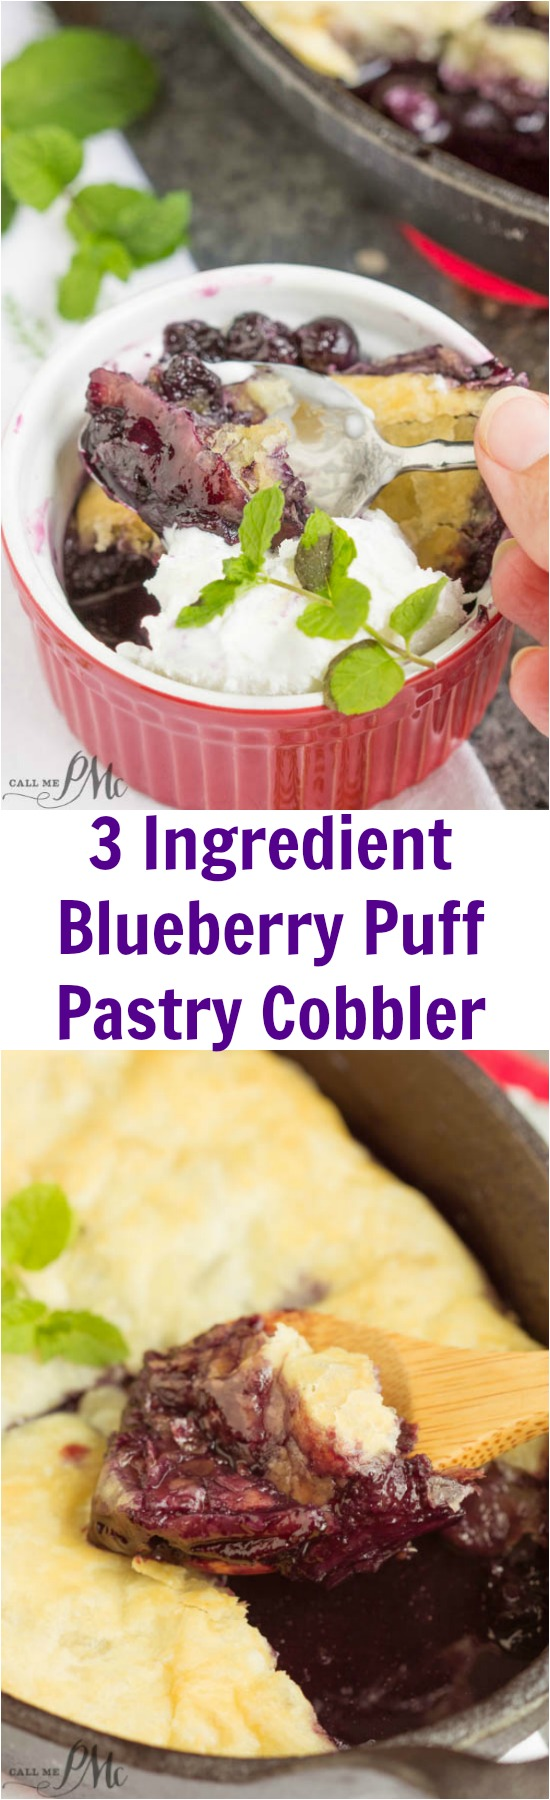 3 Ingredient Blueberry Puff Pastry Cobbler, juicy and flavorful, this is a great dessert when blueberries are in season. It's also perfect with frozen berries making it a year round treat! Definitely a lazy day dessert, this cobbler recipe is perfect for summertime picnics, barbecues, and potlucks. With just three ingredients, this recipe is prepared in just minutes.